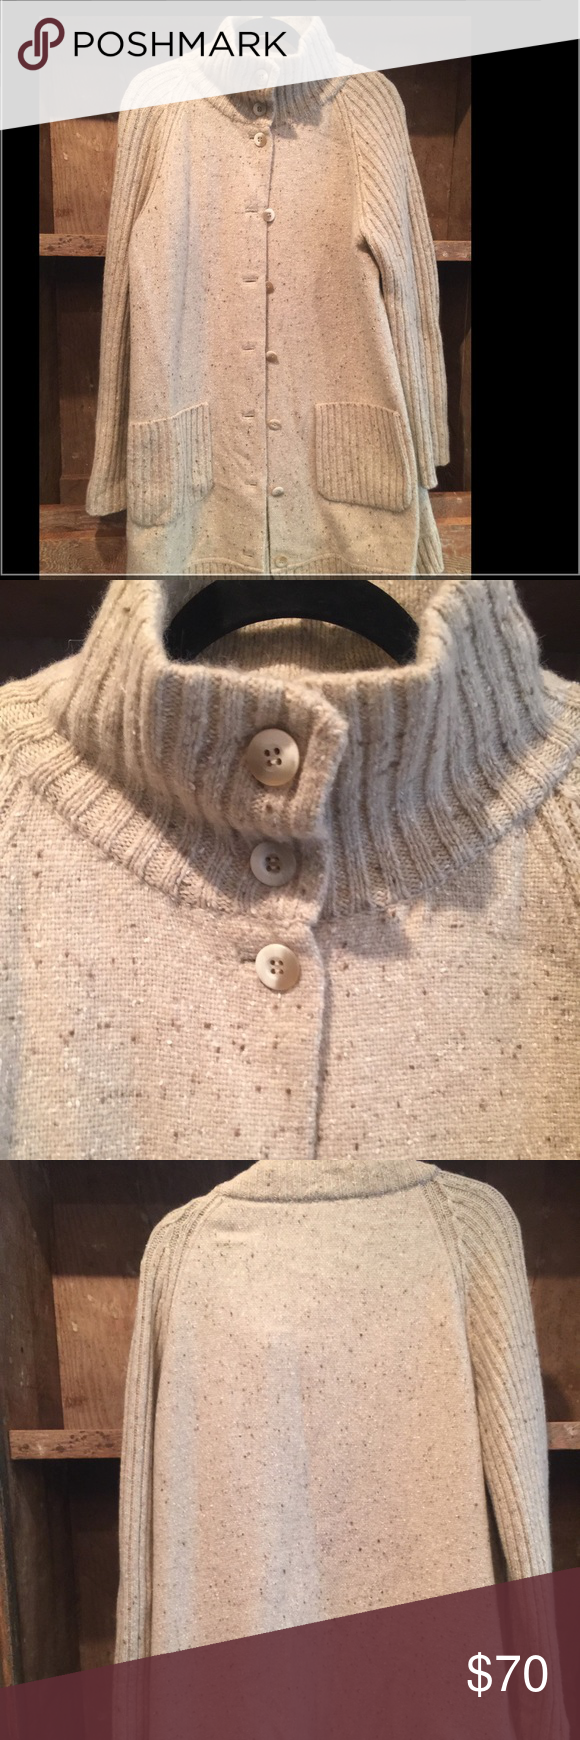 Eileen fisher long sweater This is a quality sweater-beige/longer. Size Medium. Originally $334. Eileen Fisher Sweaters Cardigans